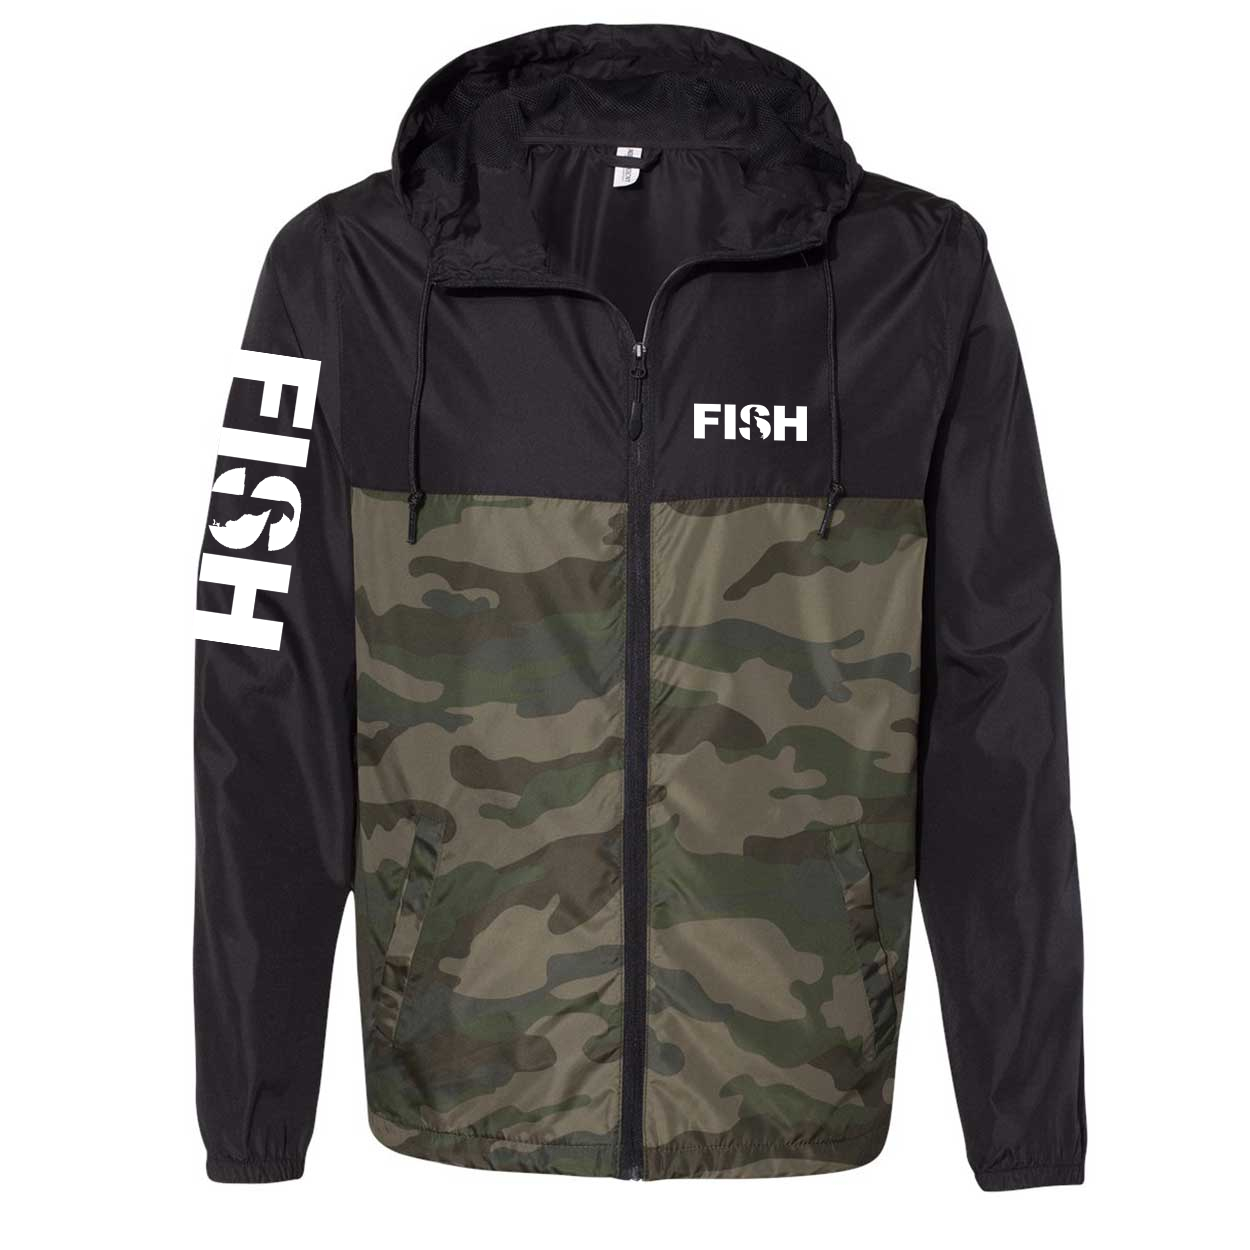 Fish Delaware Classic Lightweight Windbreaker Black/Forest Camo (White Logo)